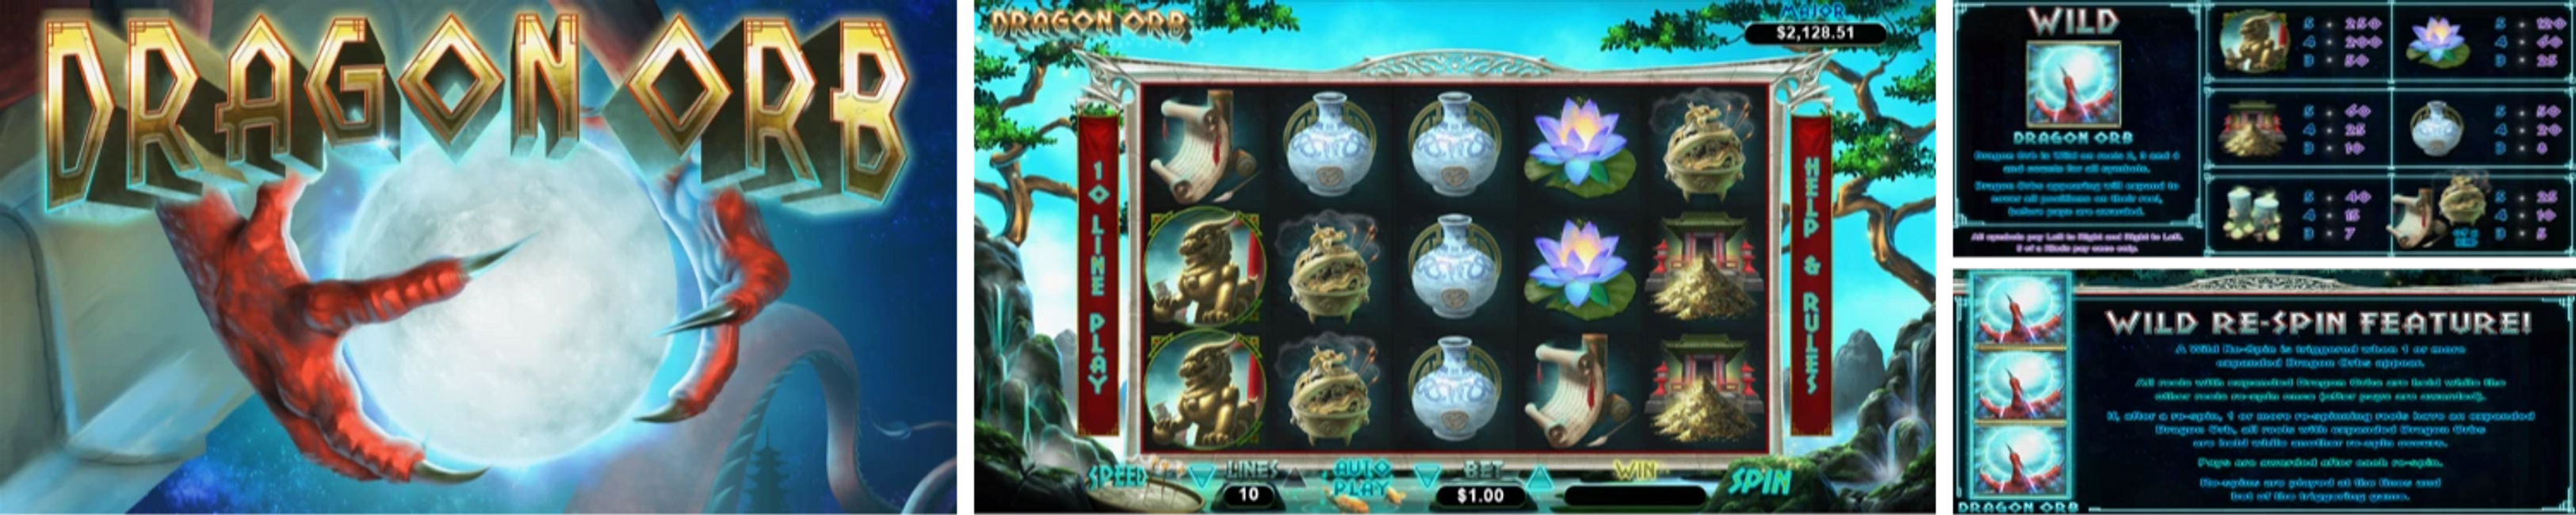 Dragon Orb Online Video Slot Review